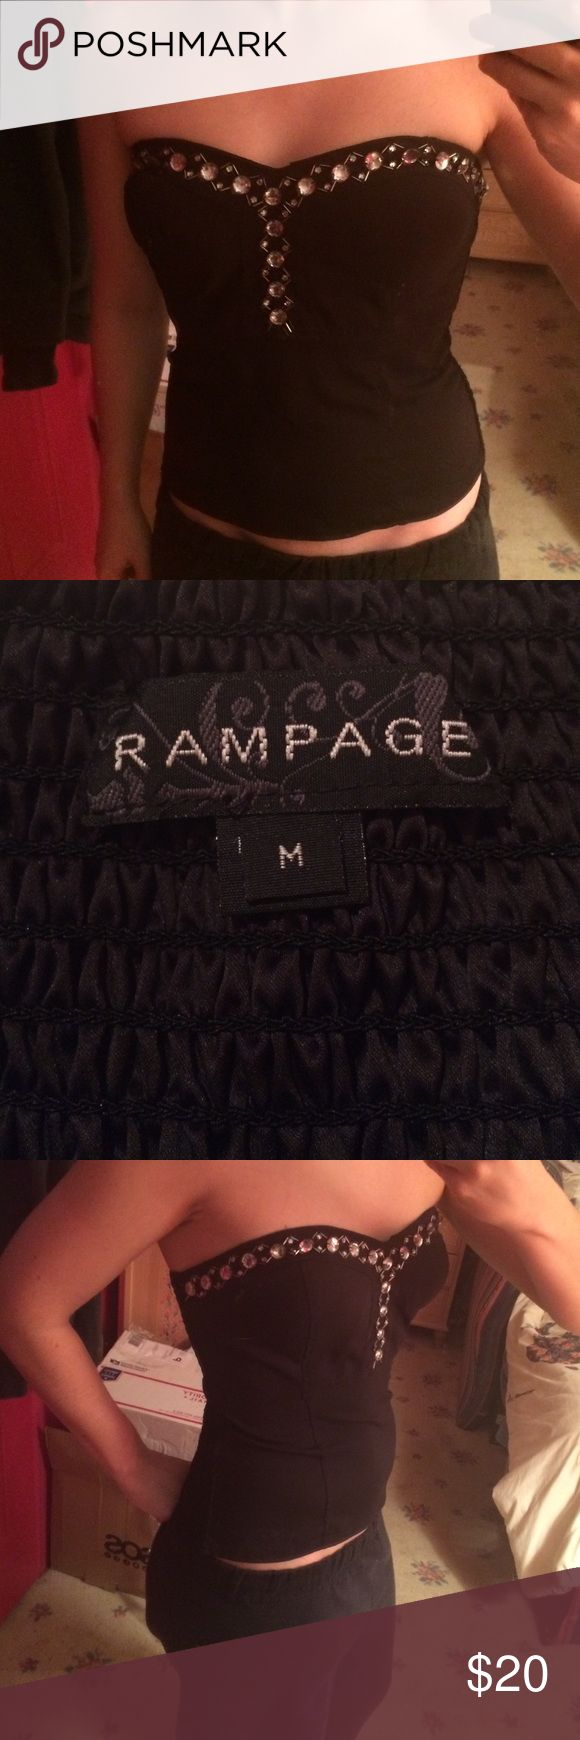 Rampage M beaded bust black tube top Only ever wore twice so I'm decluttering. Has all beads on top and is fitted, slight flare at bottom so it doesn't show tummy bulge! Eager to sell! Rampage Tops